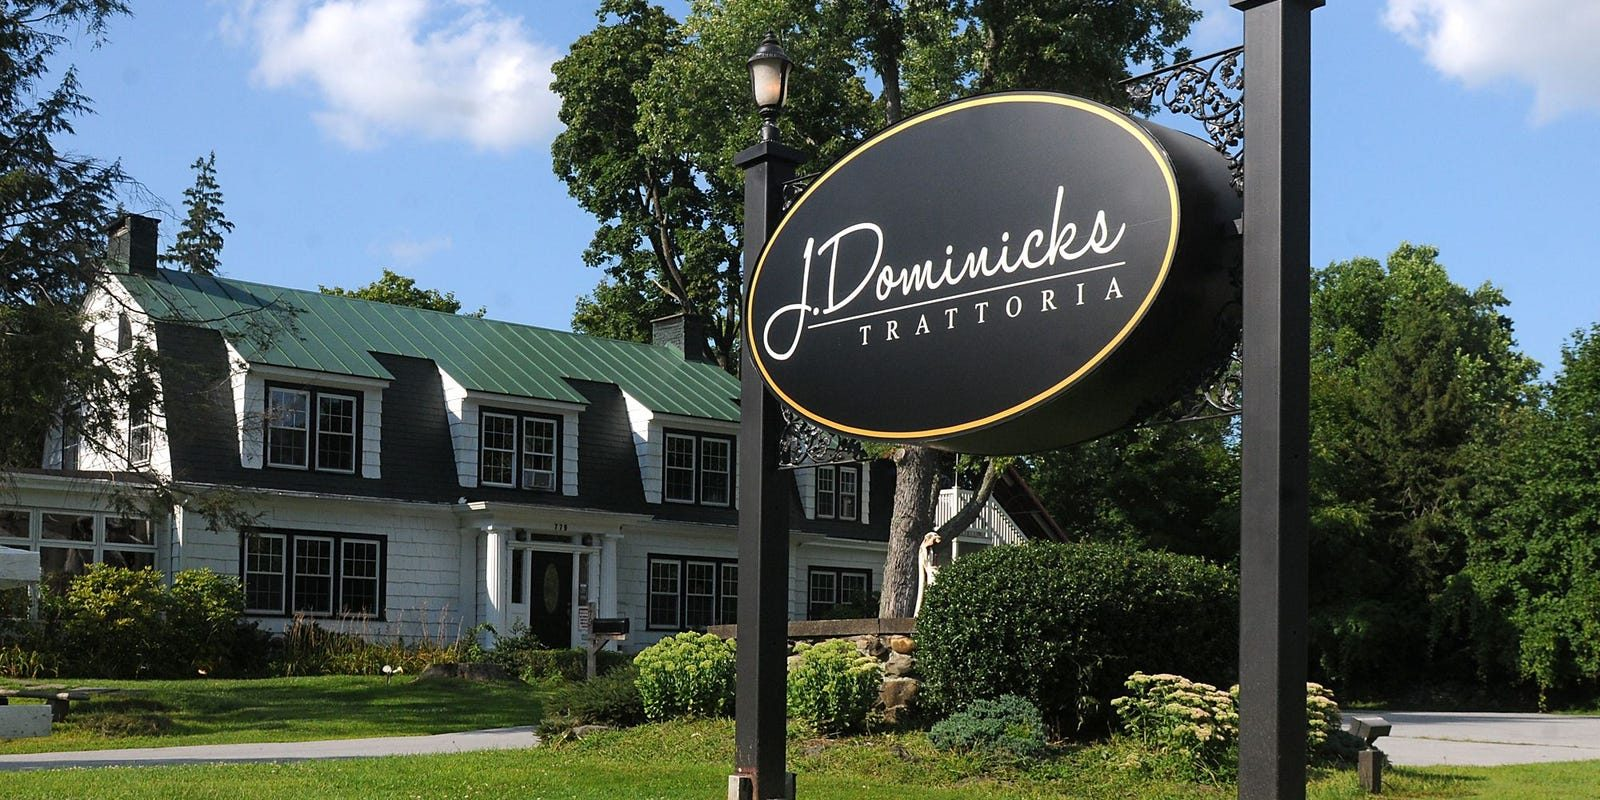 J Dominick's Trattoria Psychic Medium Event  Poughkeepsie, New York  Thursday March 11th 2021